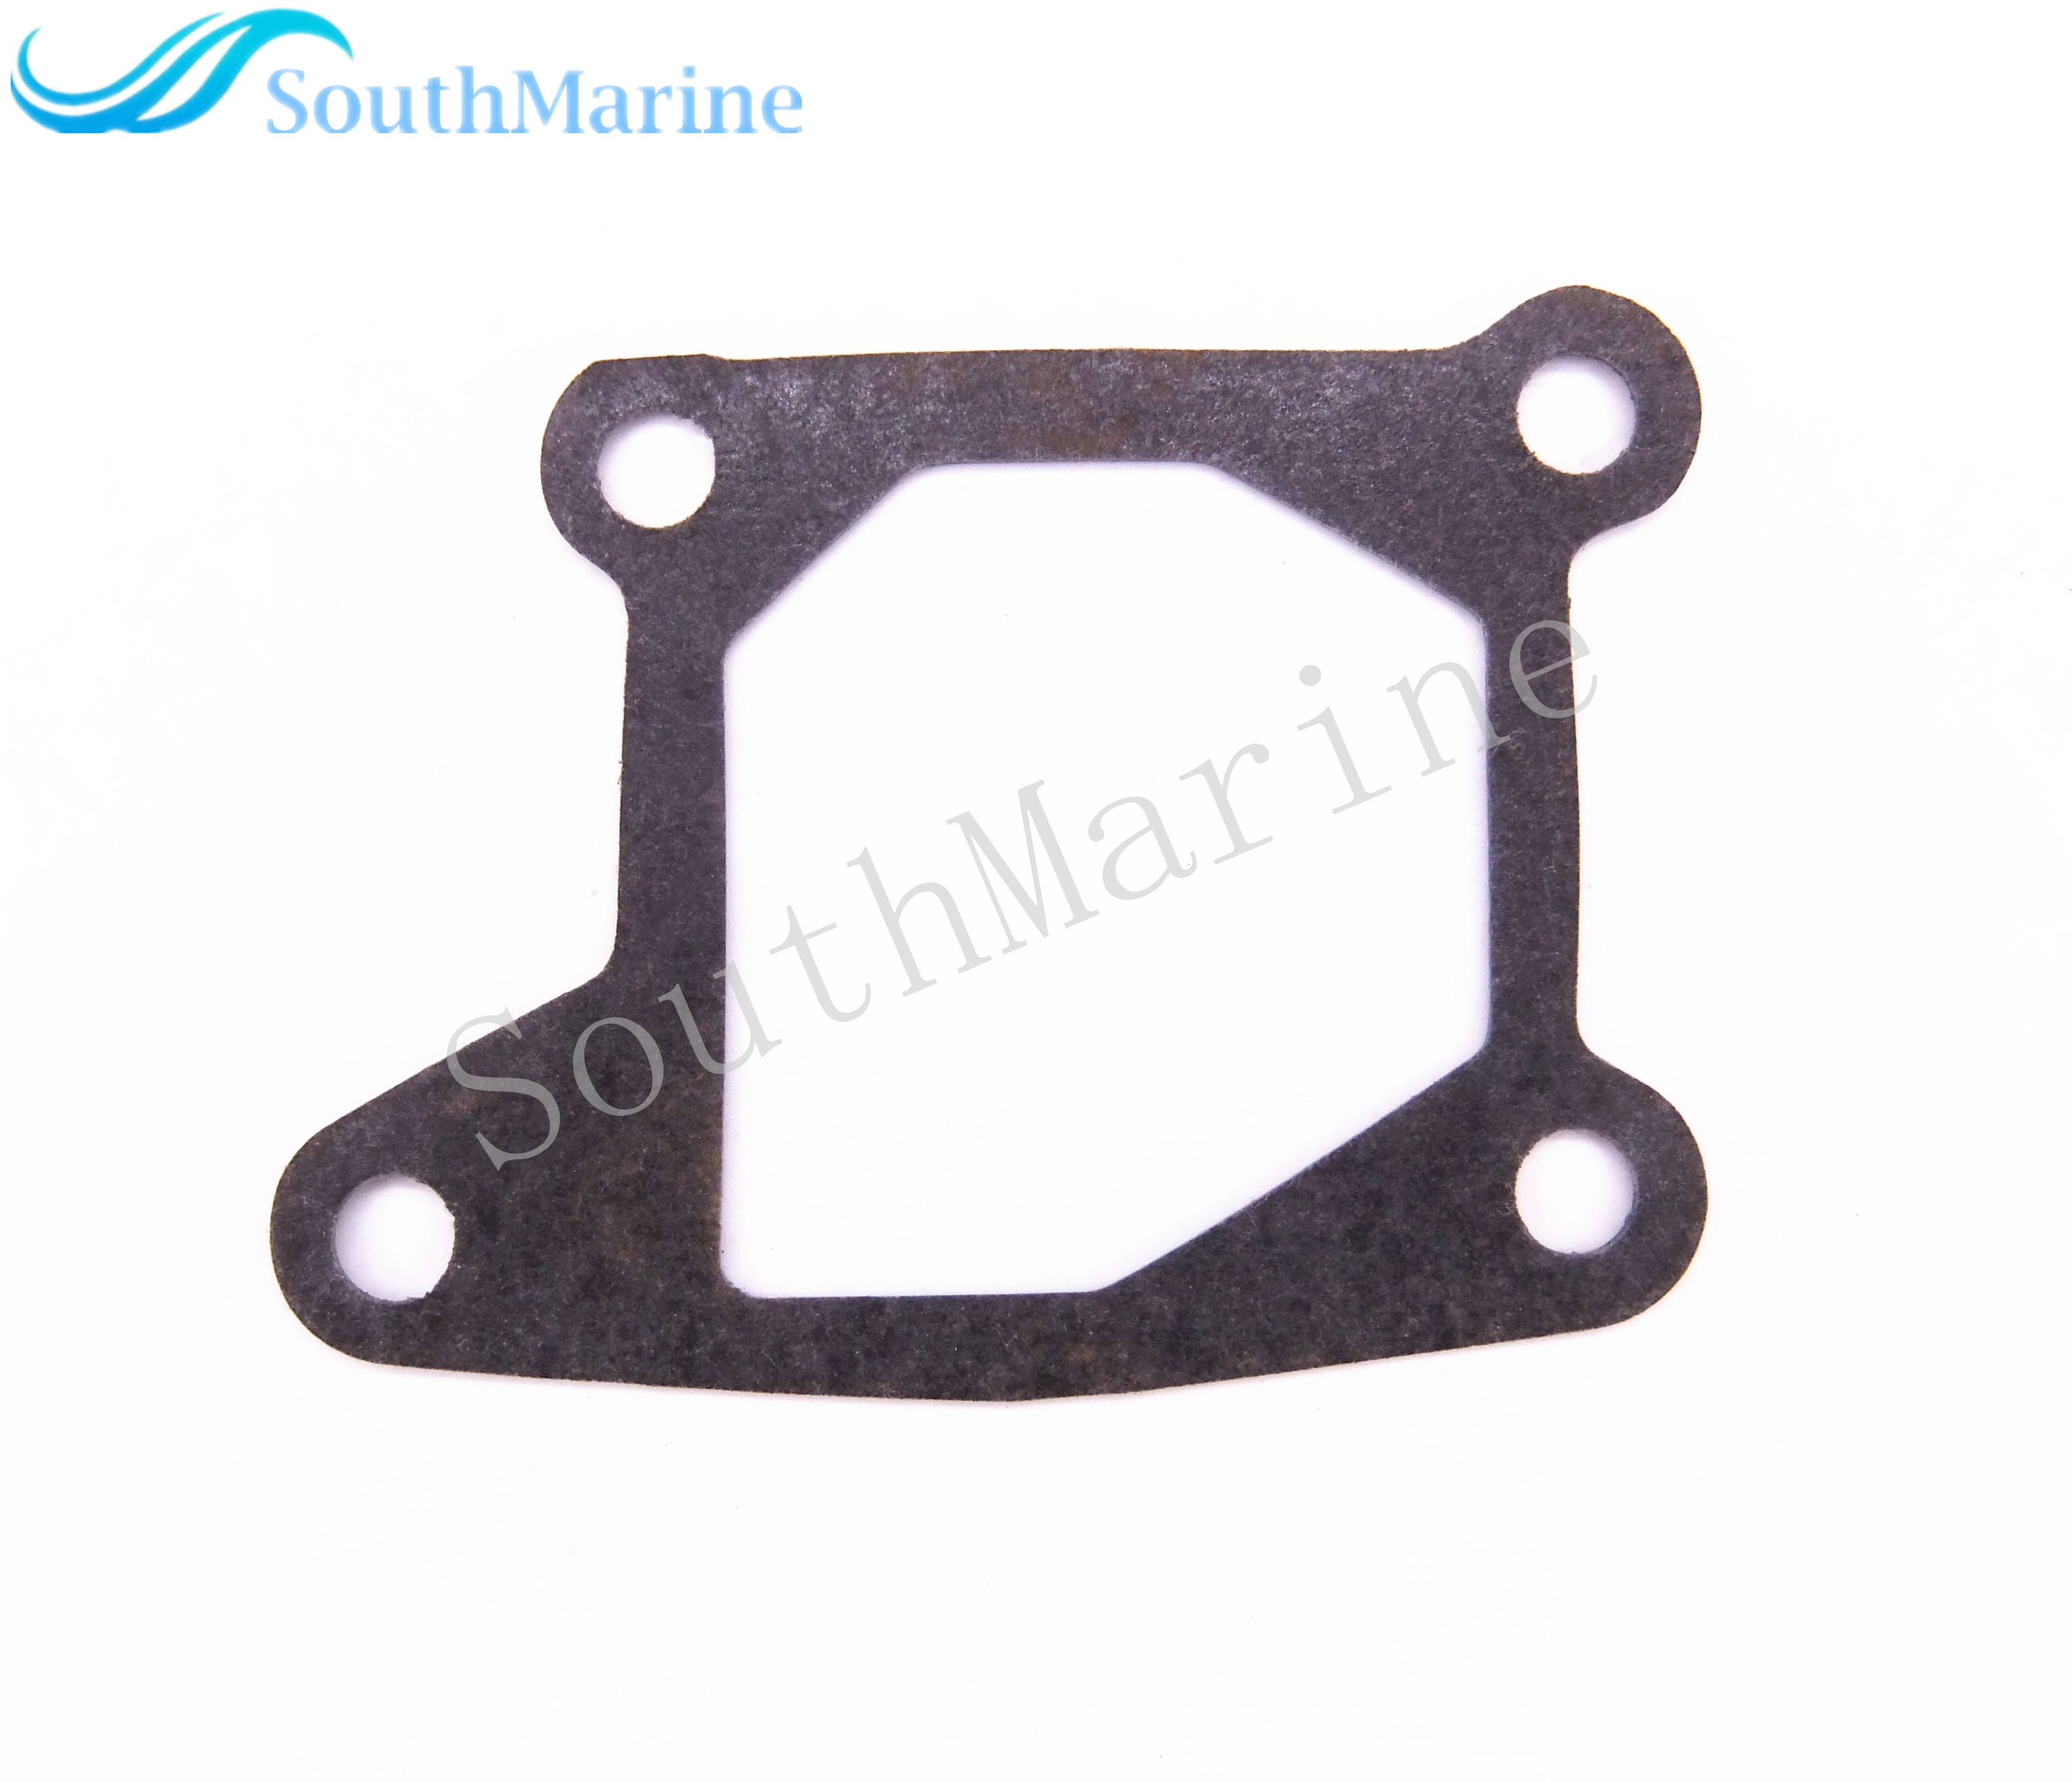 Boat Motor 3B2-02312-0 3B202-3120M Exhaust Pipe Gasket for Tohatsu Nissan 2-Stroke 6HP 8HP 9.8HP Outboard Engine